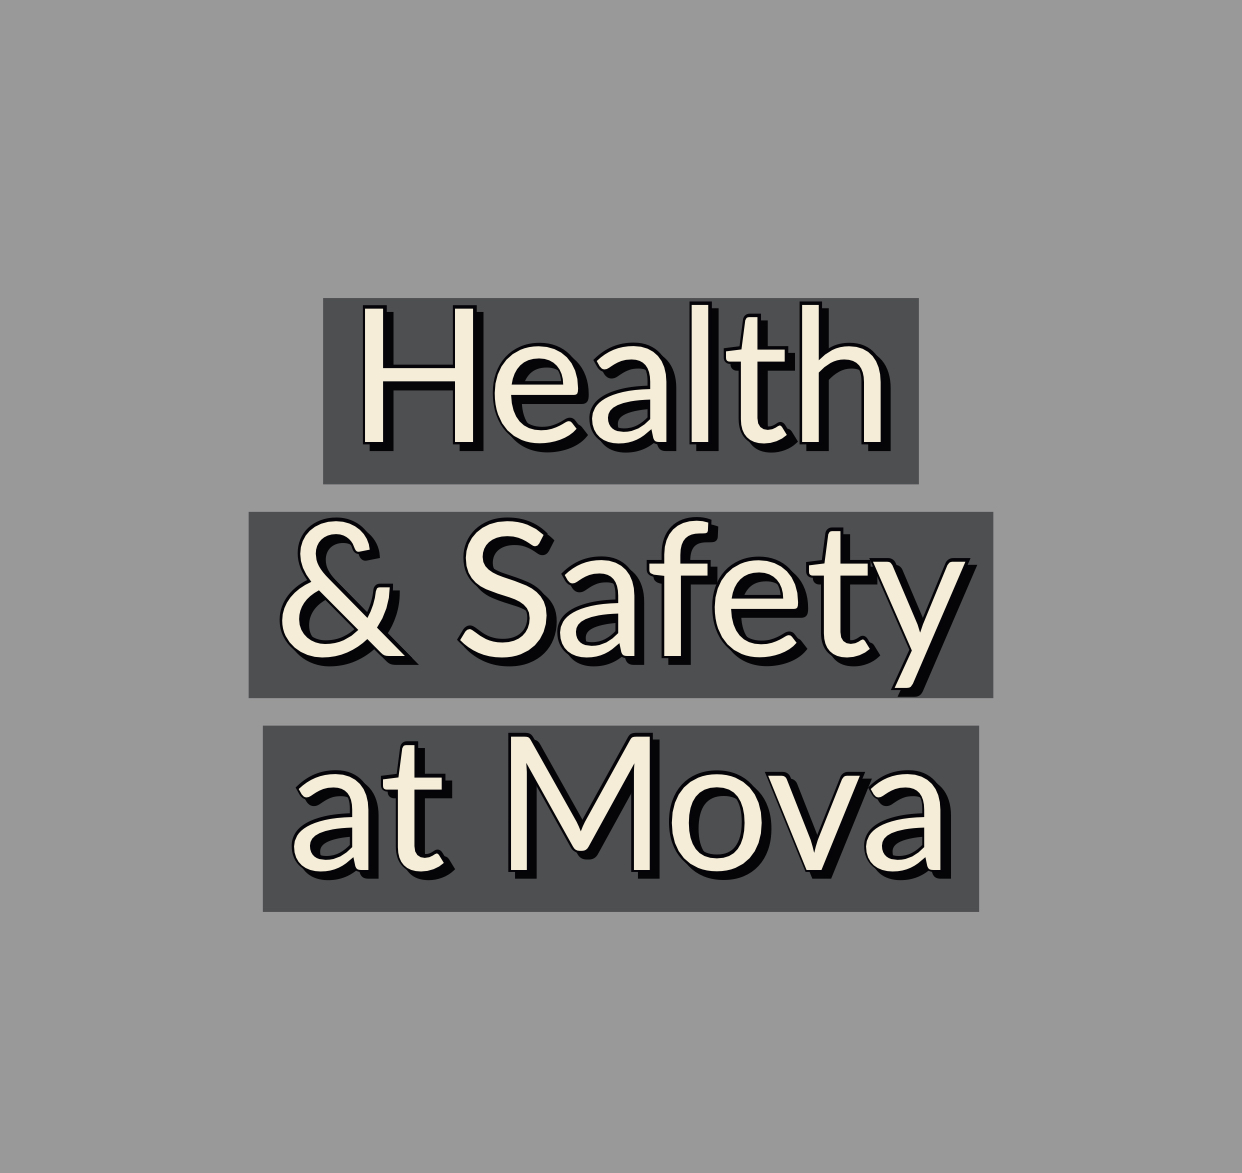 Health & Safety at Mova